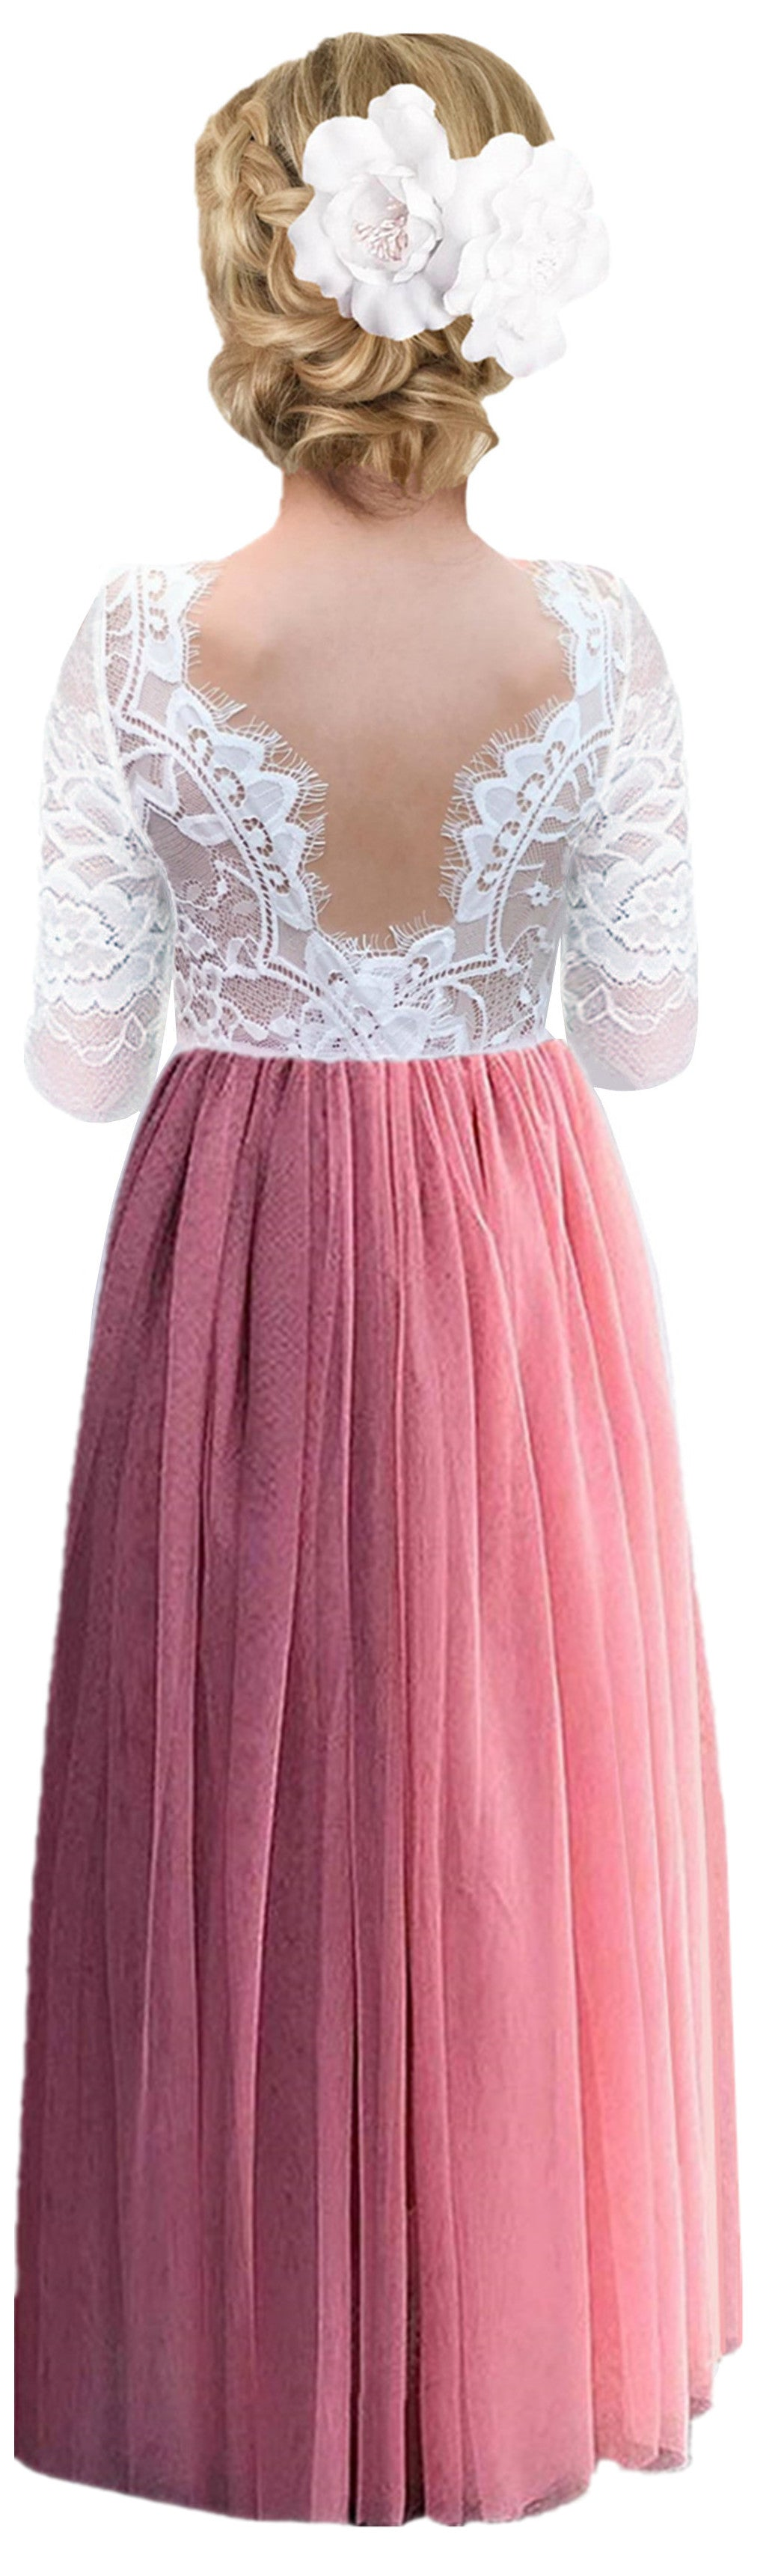 2BUNNIES Girl Rose Lace Back Long Sleeve Maxi Straight Dress (Dusty Pink)